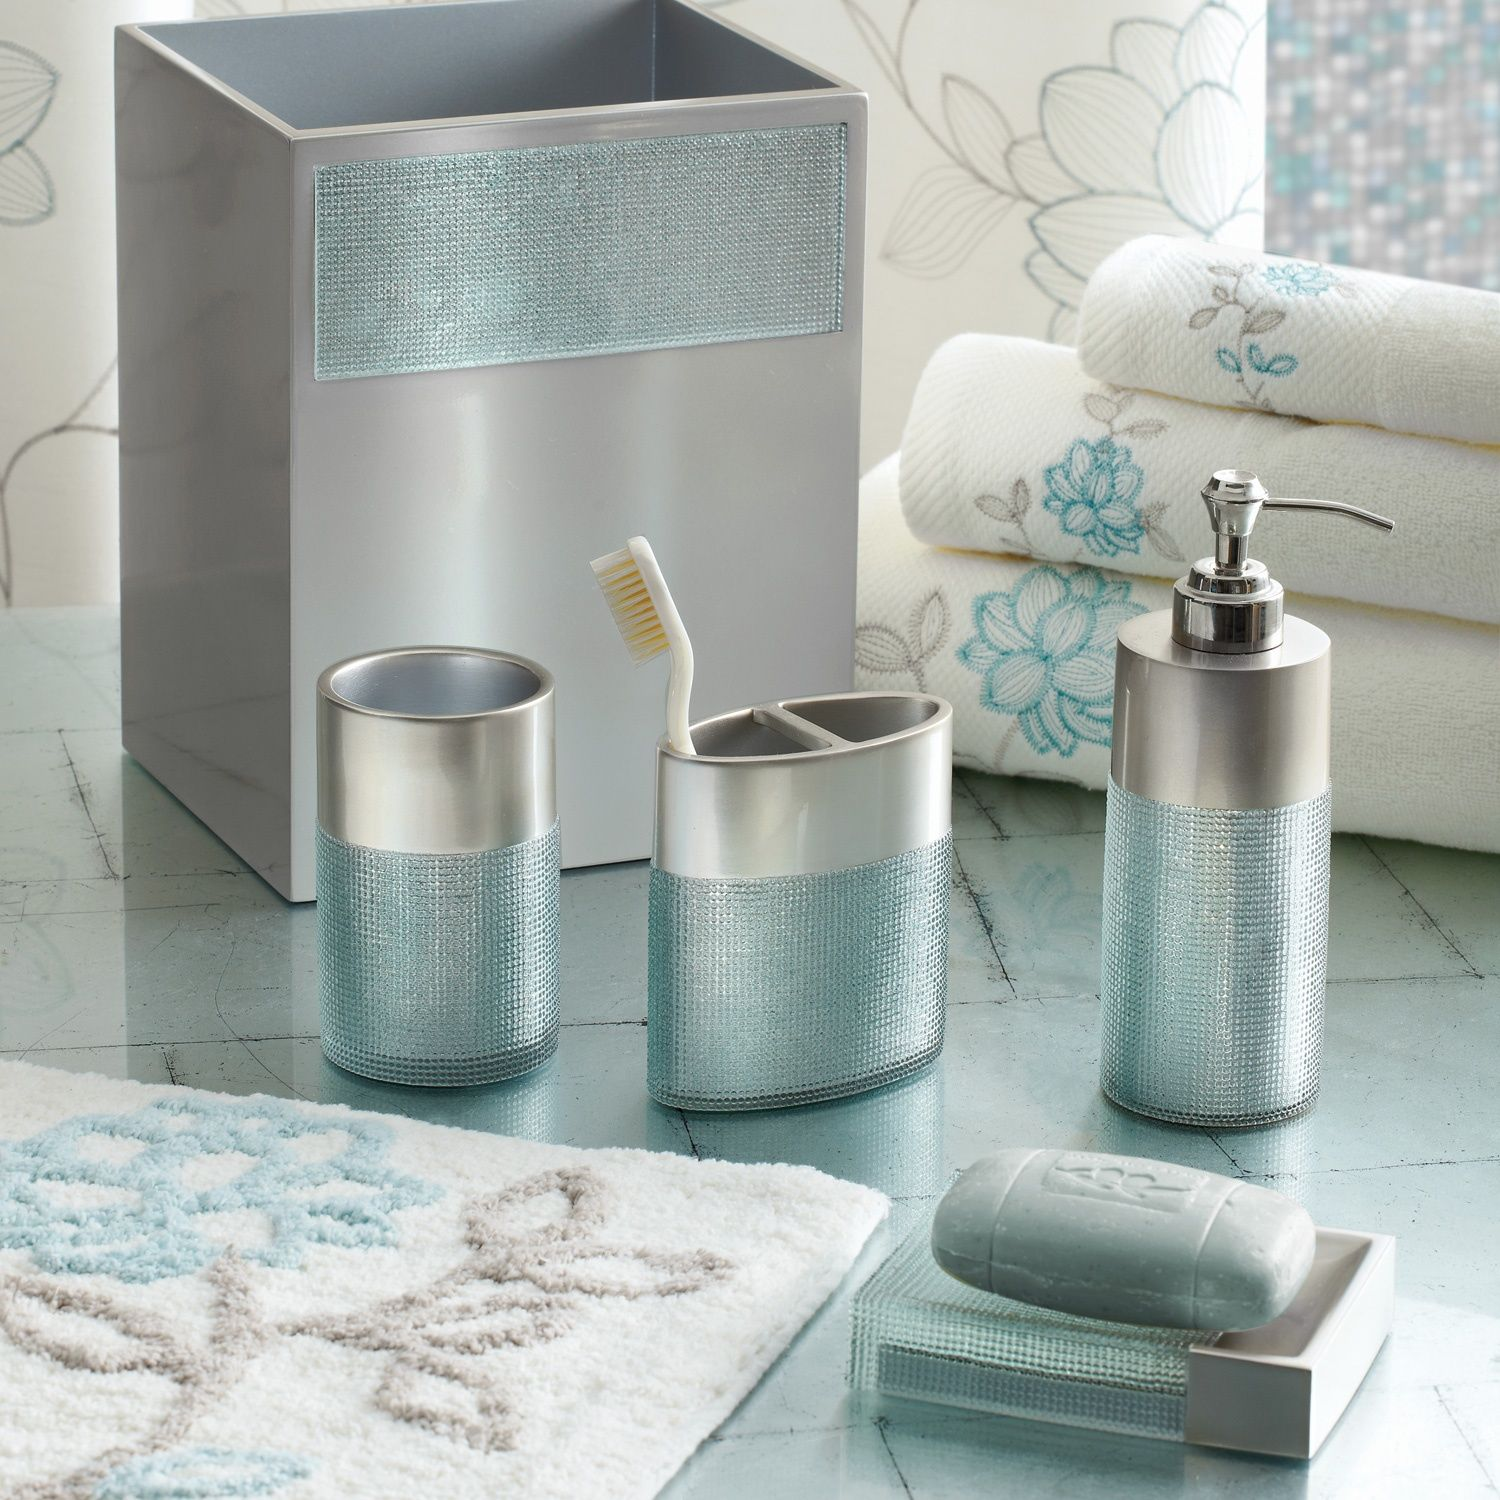 Gray Bathroom Accessories - Google Search